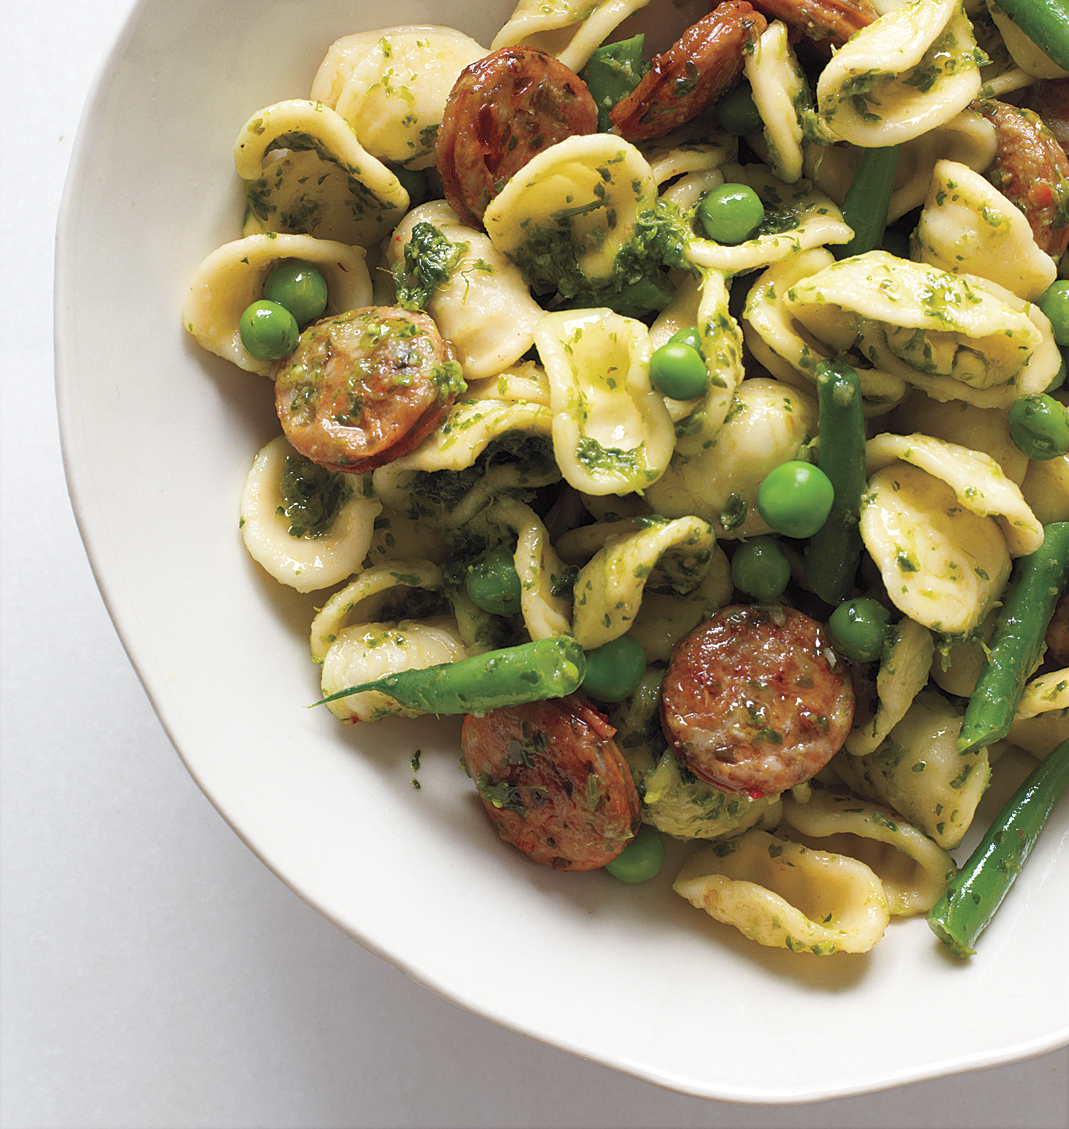 Pesto Orecchiette With Chicken Sausage